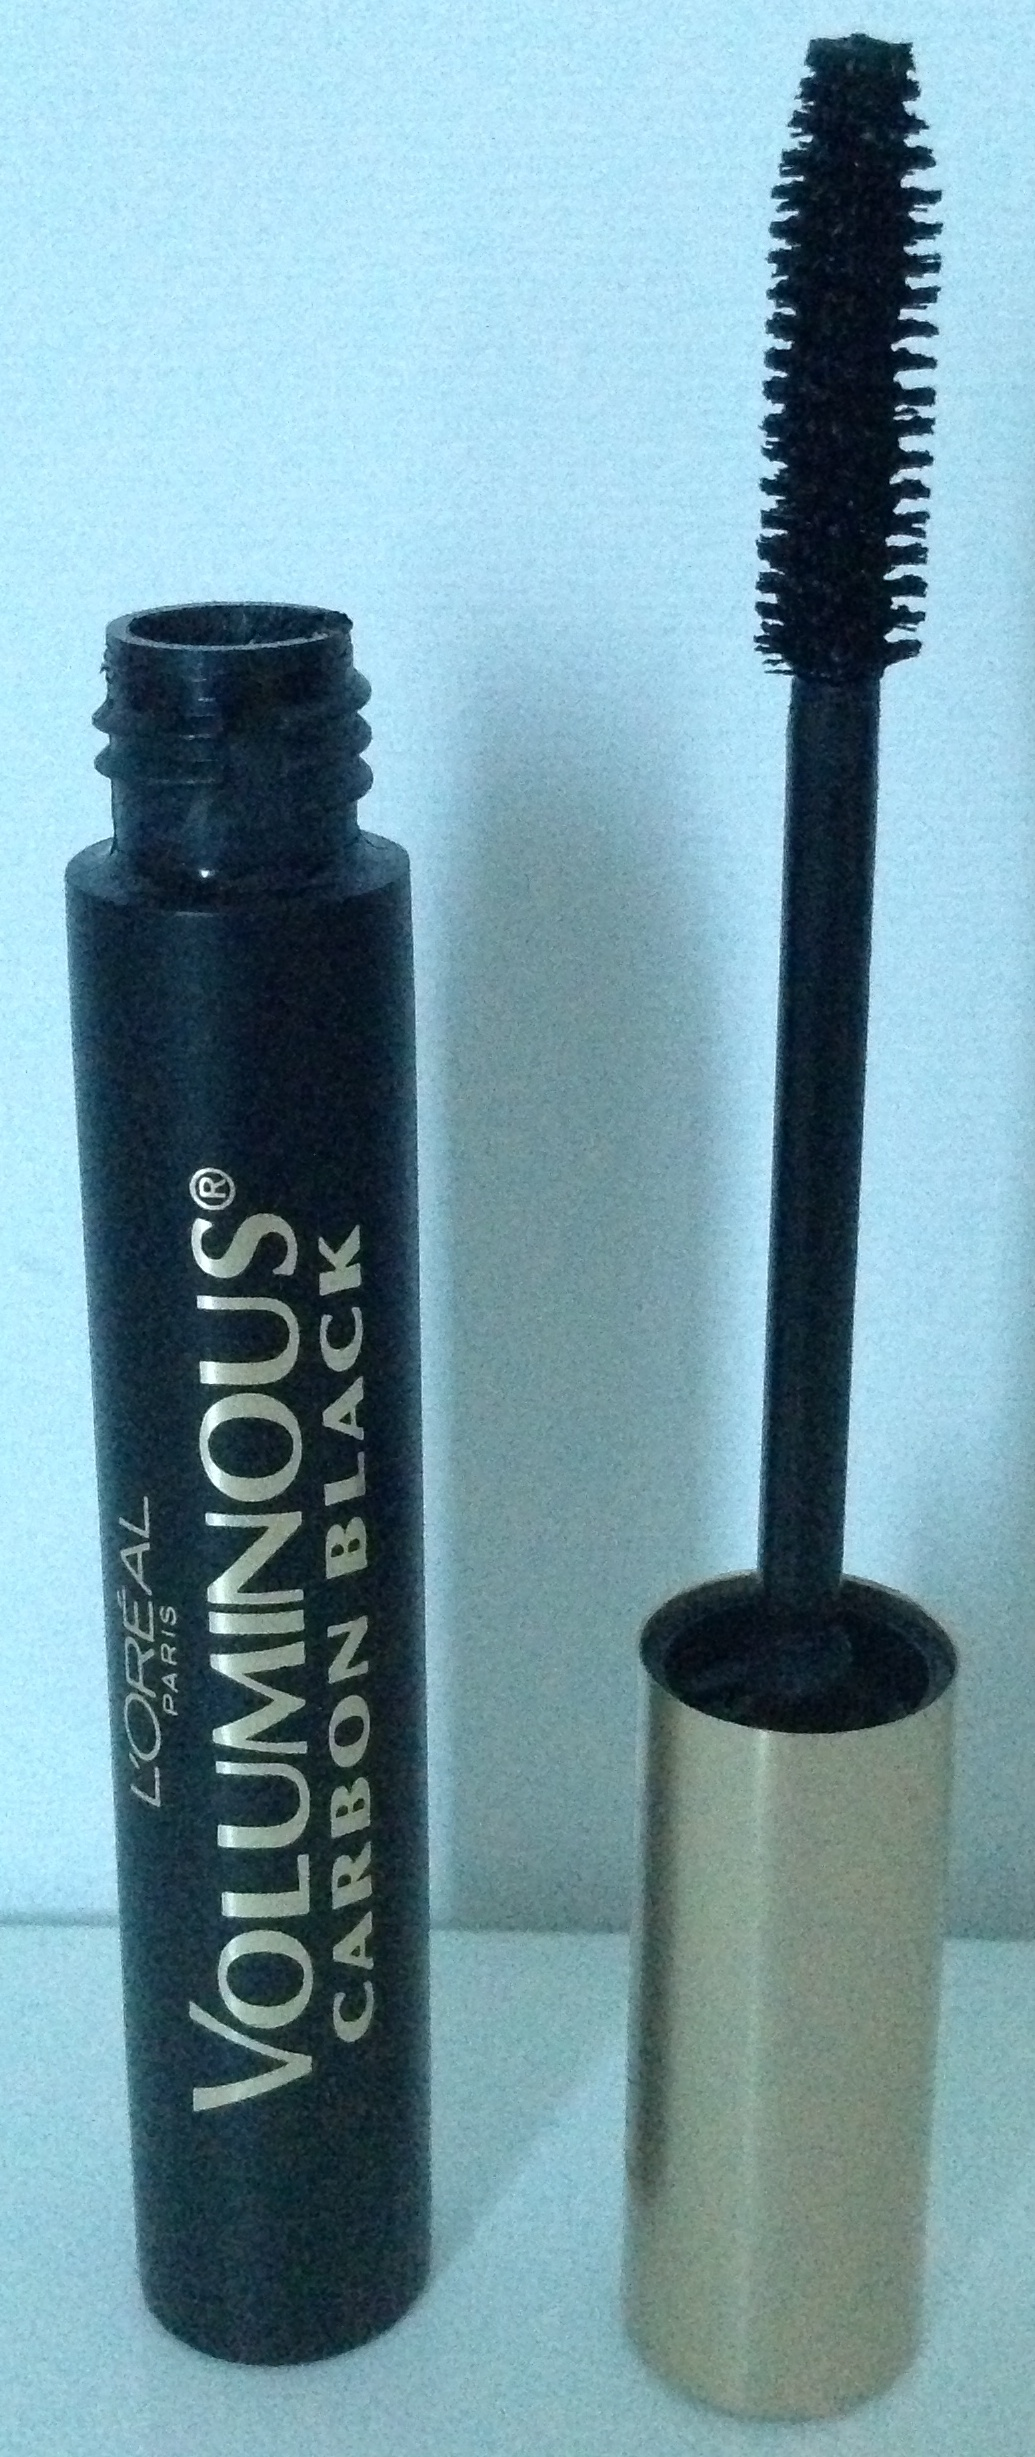 3f0c9bb323d Aside from the unassuming packaging, this serves and performs as more of a  high-end mascara. It's one of the few beauty products that convinced me, ...